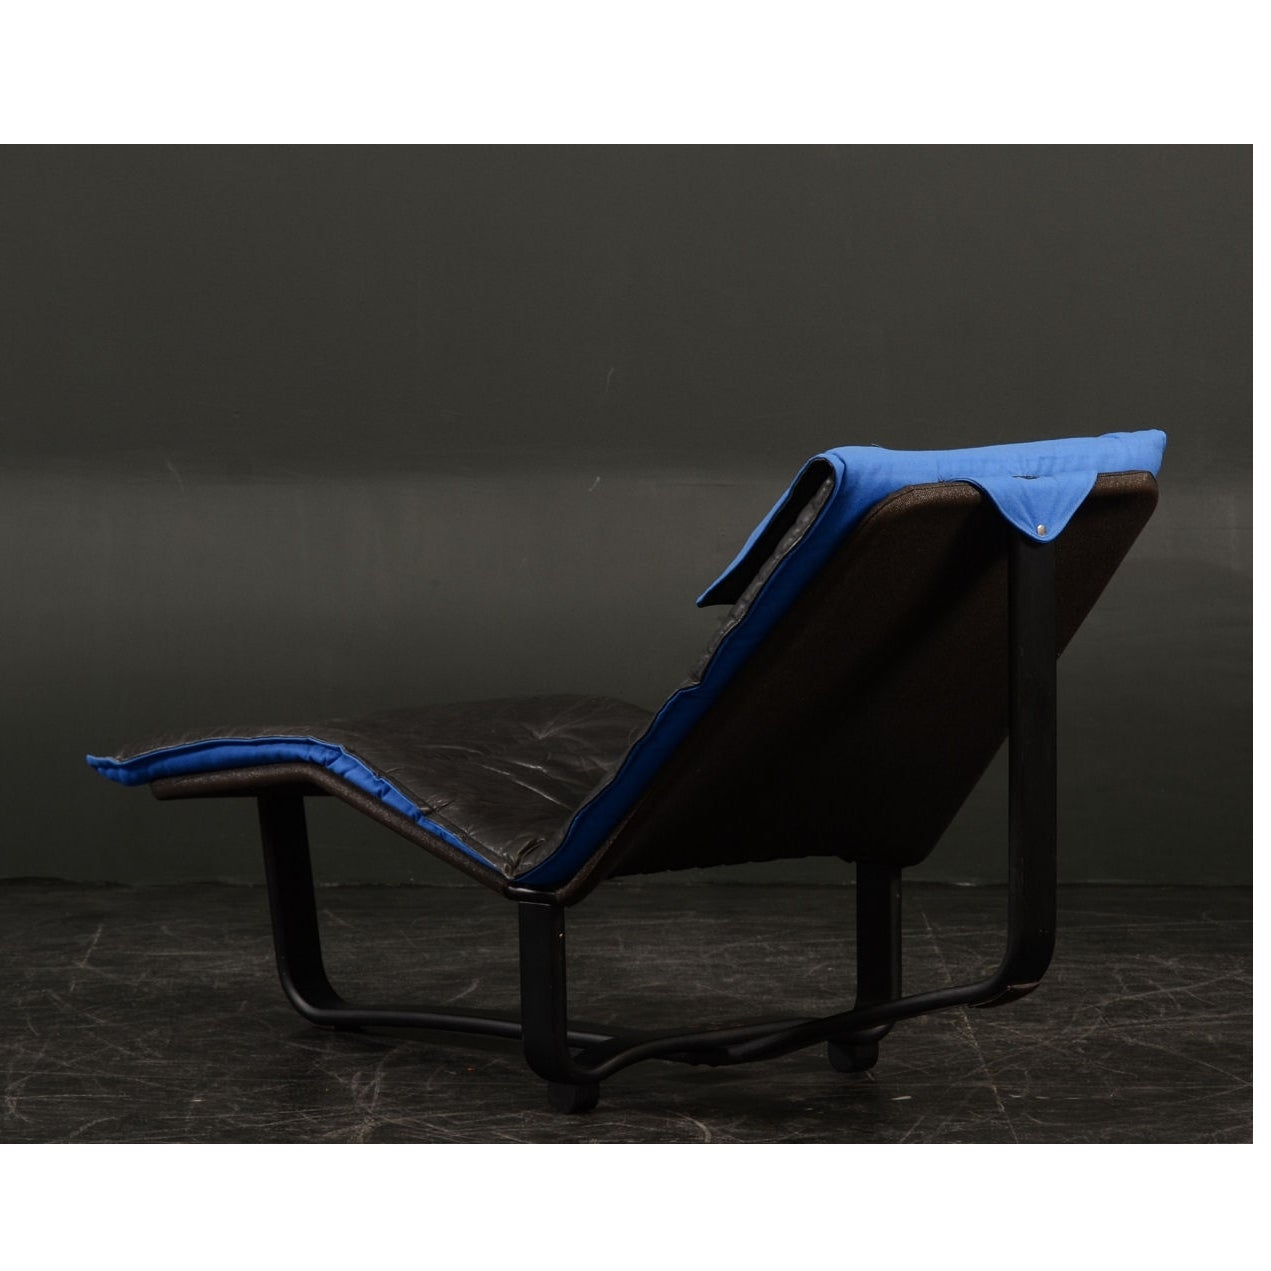 1970s igmar relling and knut leather chaise lounge at 1stdibs for Blue leather chaise lounge